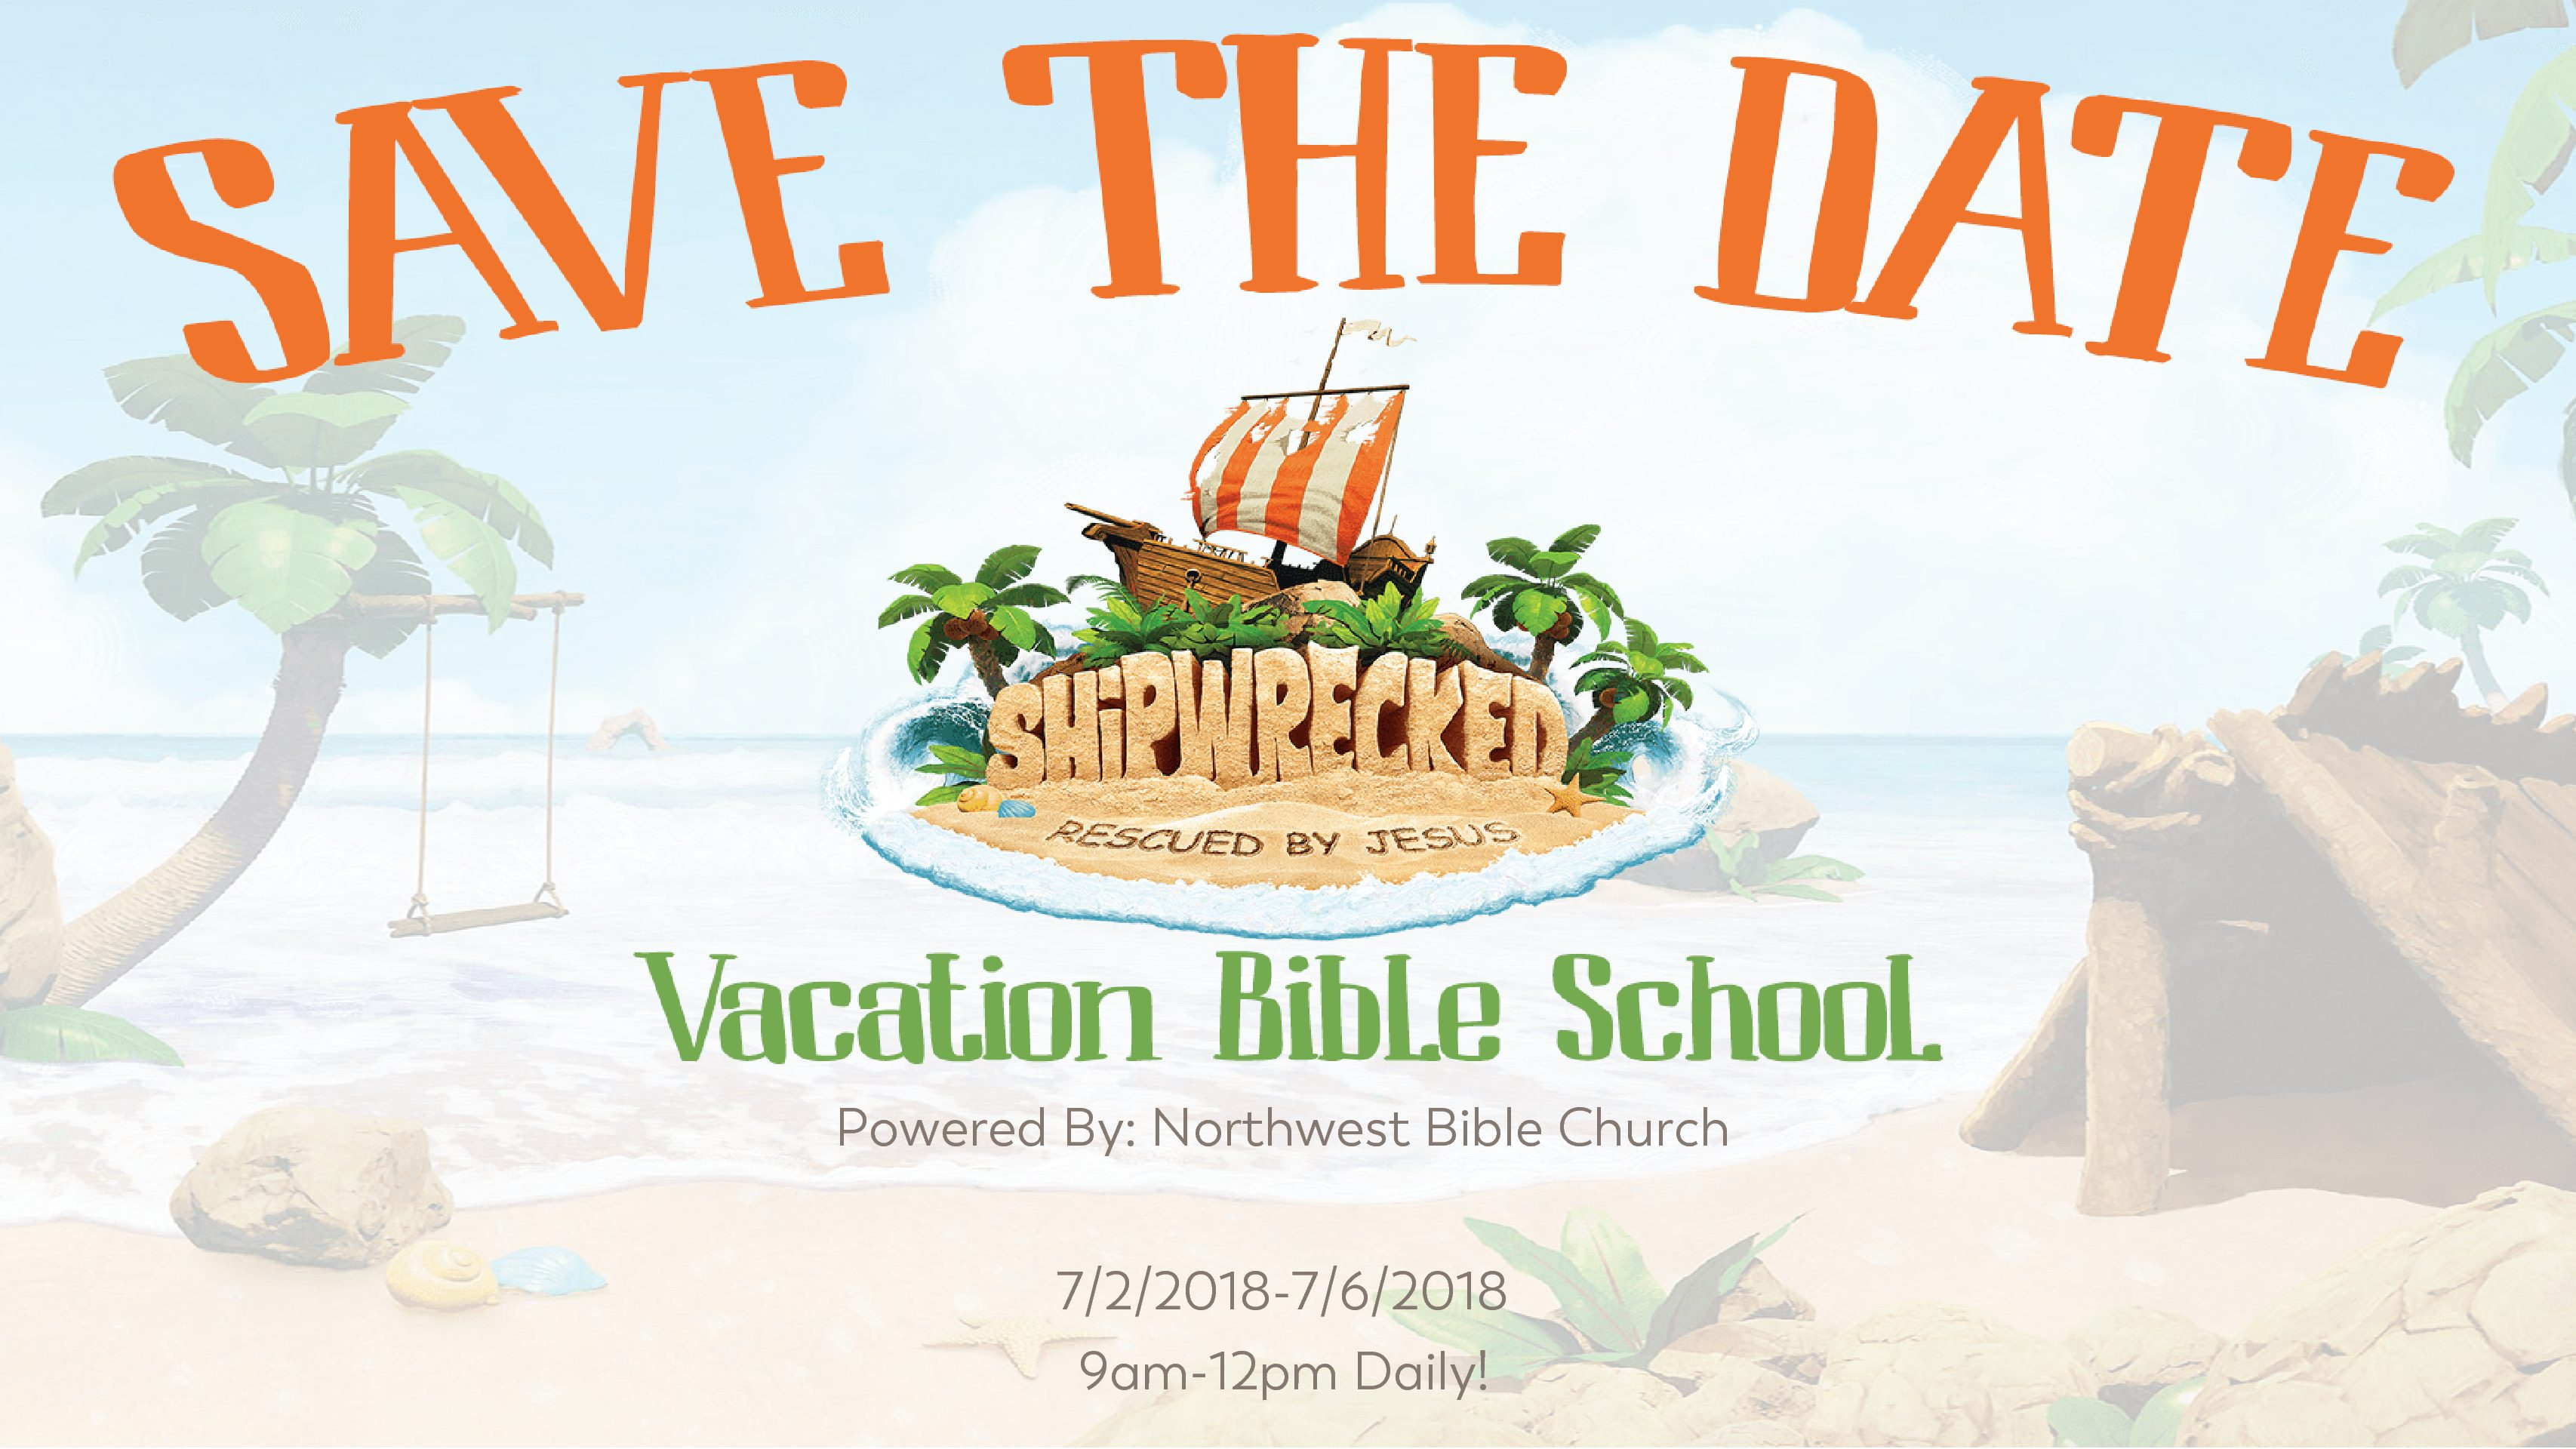 Shipwrecked VBS for Kids Northwest Bible ChurchNorthwest Bible Church